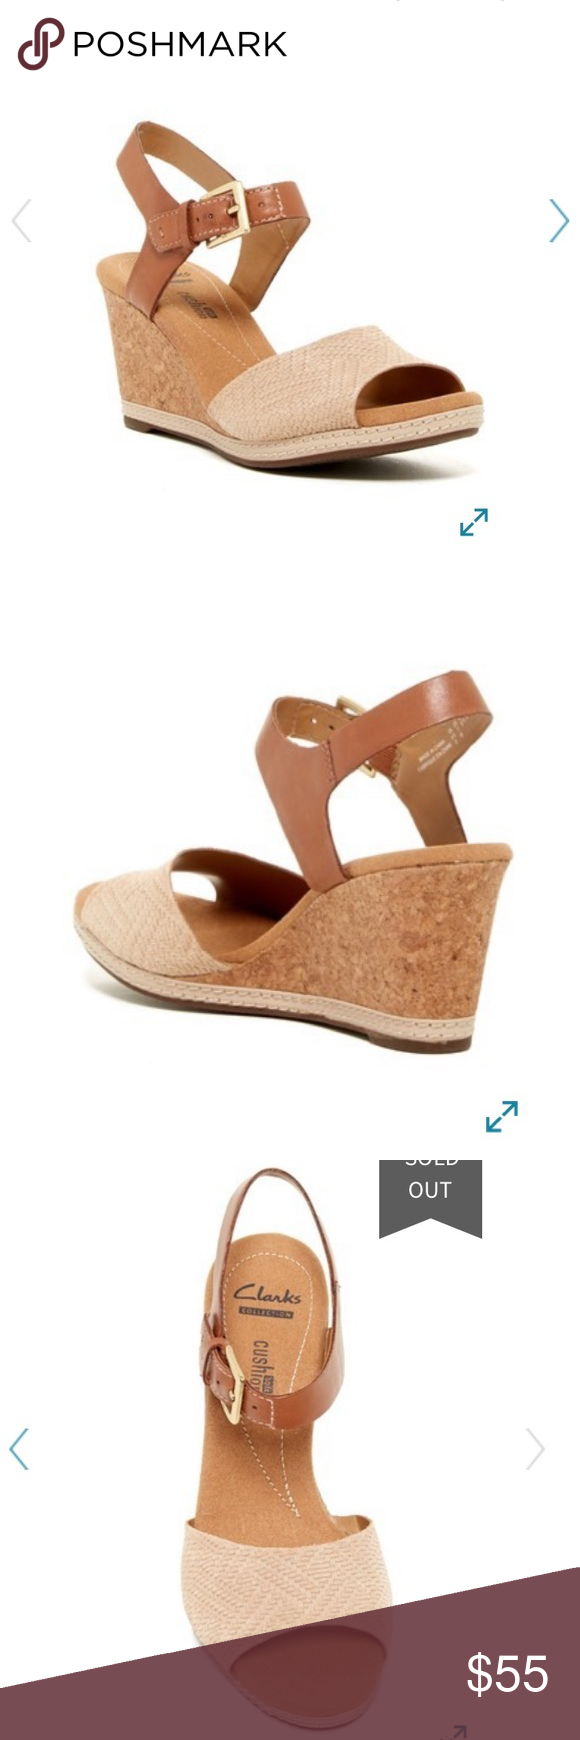 695e62a1a568 Clarks Helio Jet Ankle Strap Wedge NWOT Color  Nude Suede Box Included A  suede woven